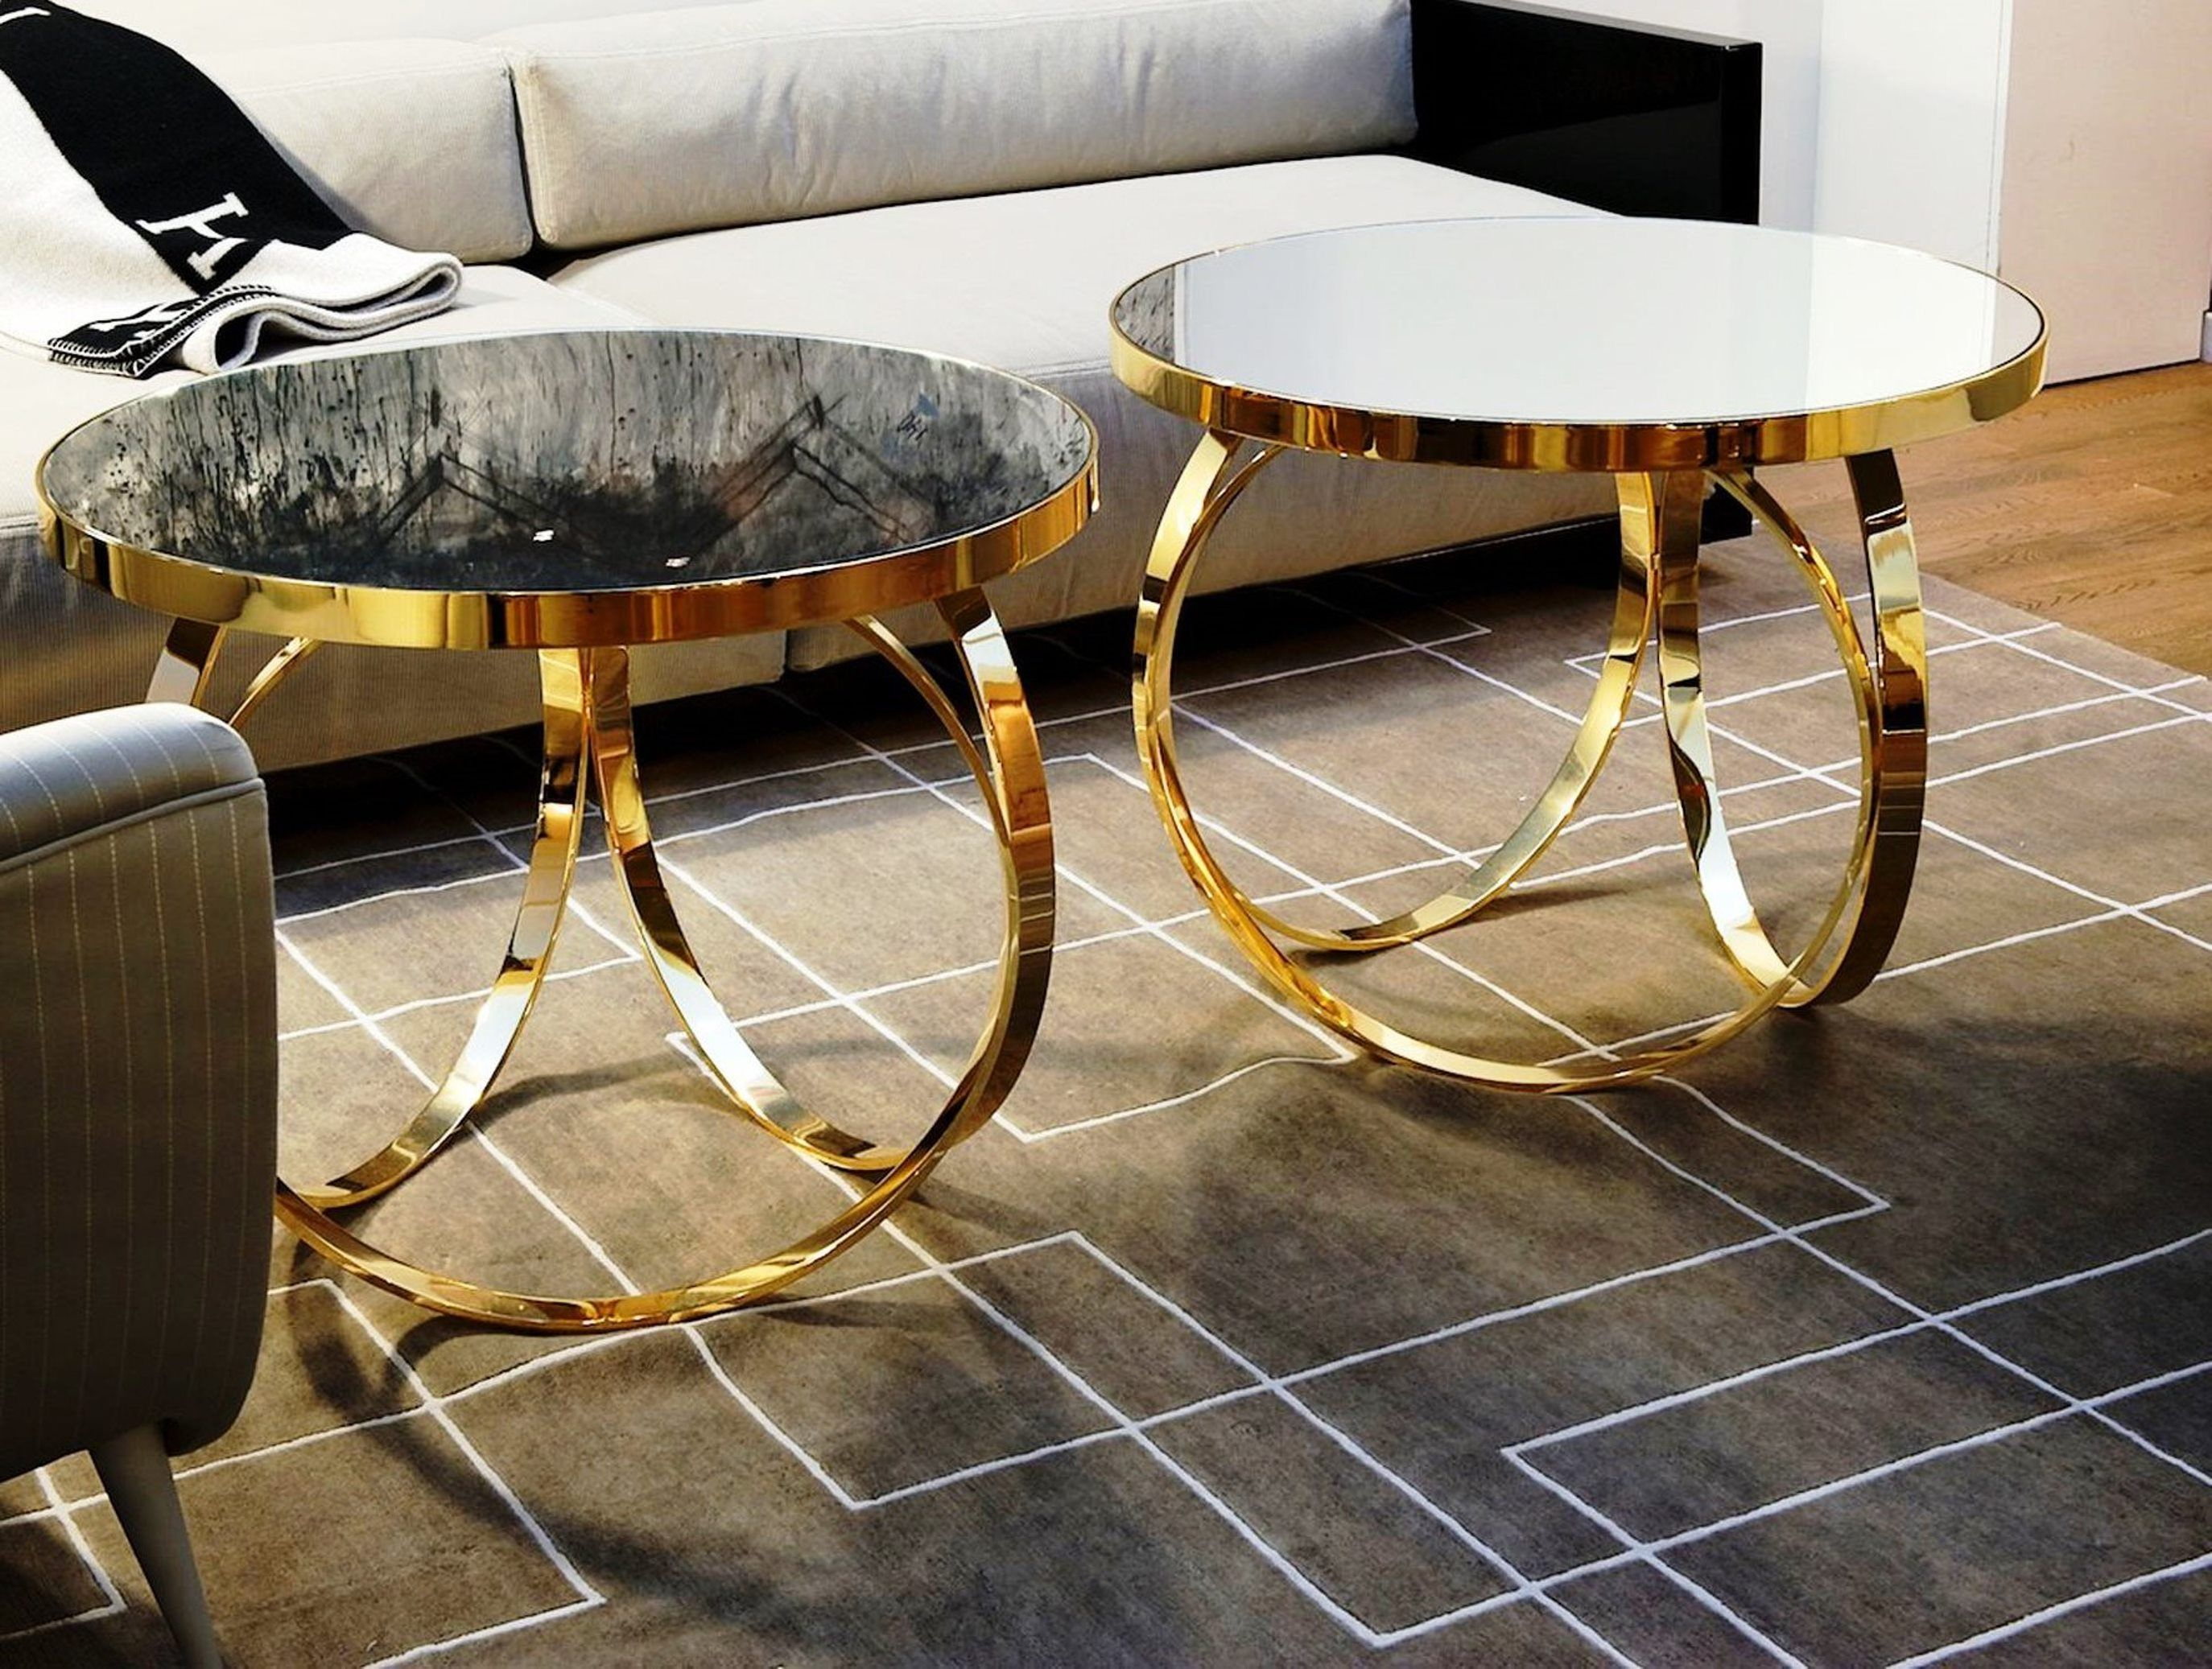 Best Of Luxury Discover More: Www.coffeeandsidetables.com |  #blackandgoldcoffeetables #circularcoffeetable. Coffee TablesFolding Chair